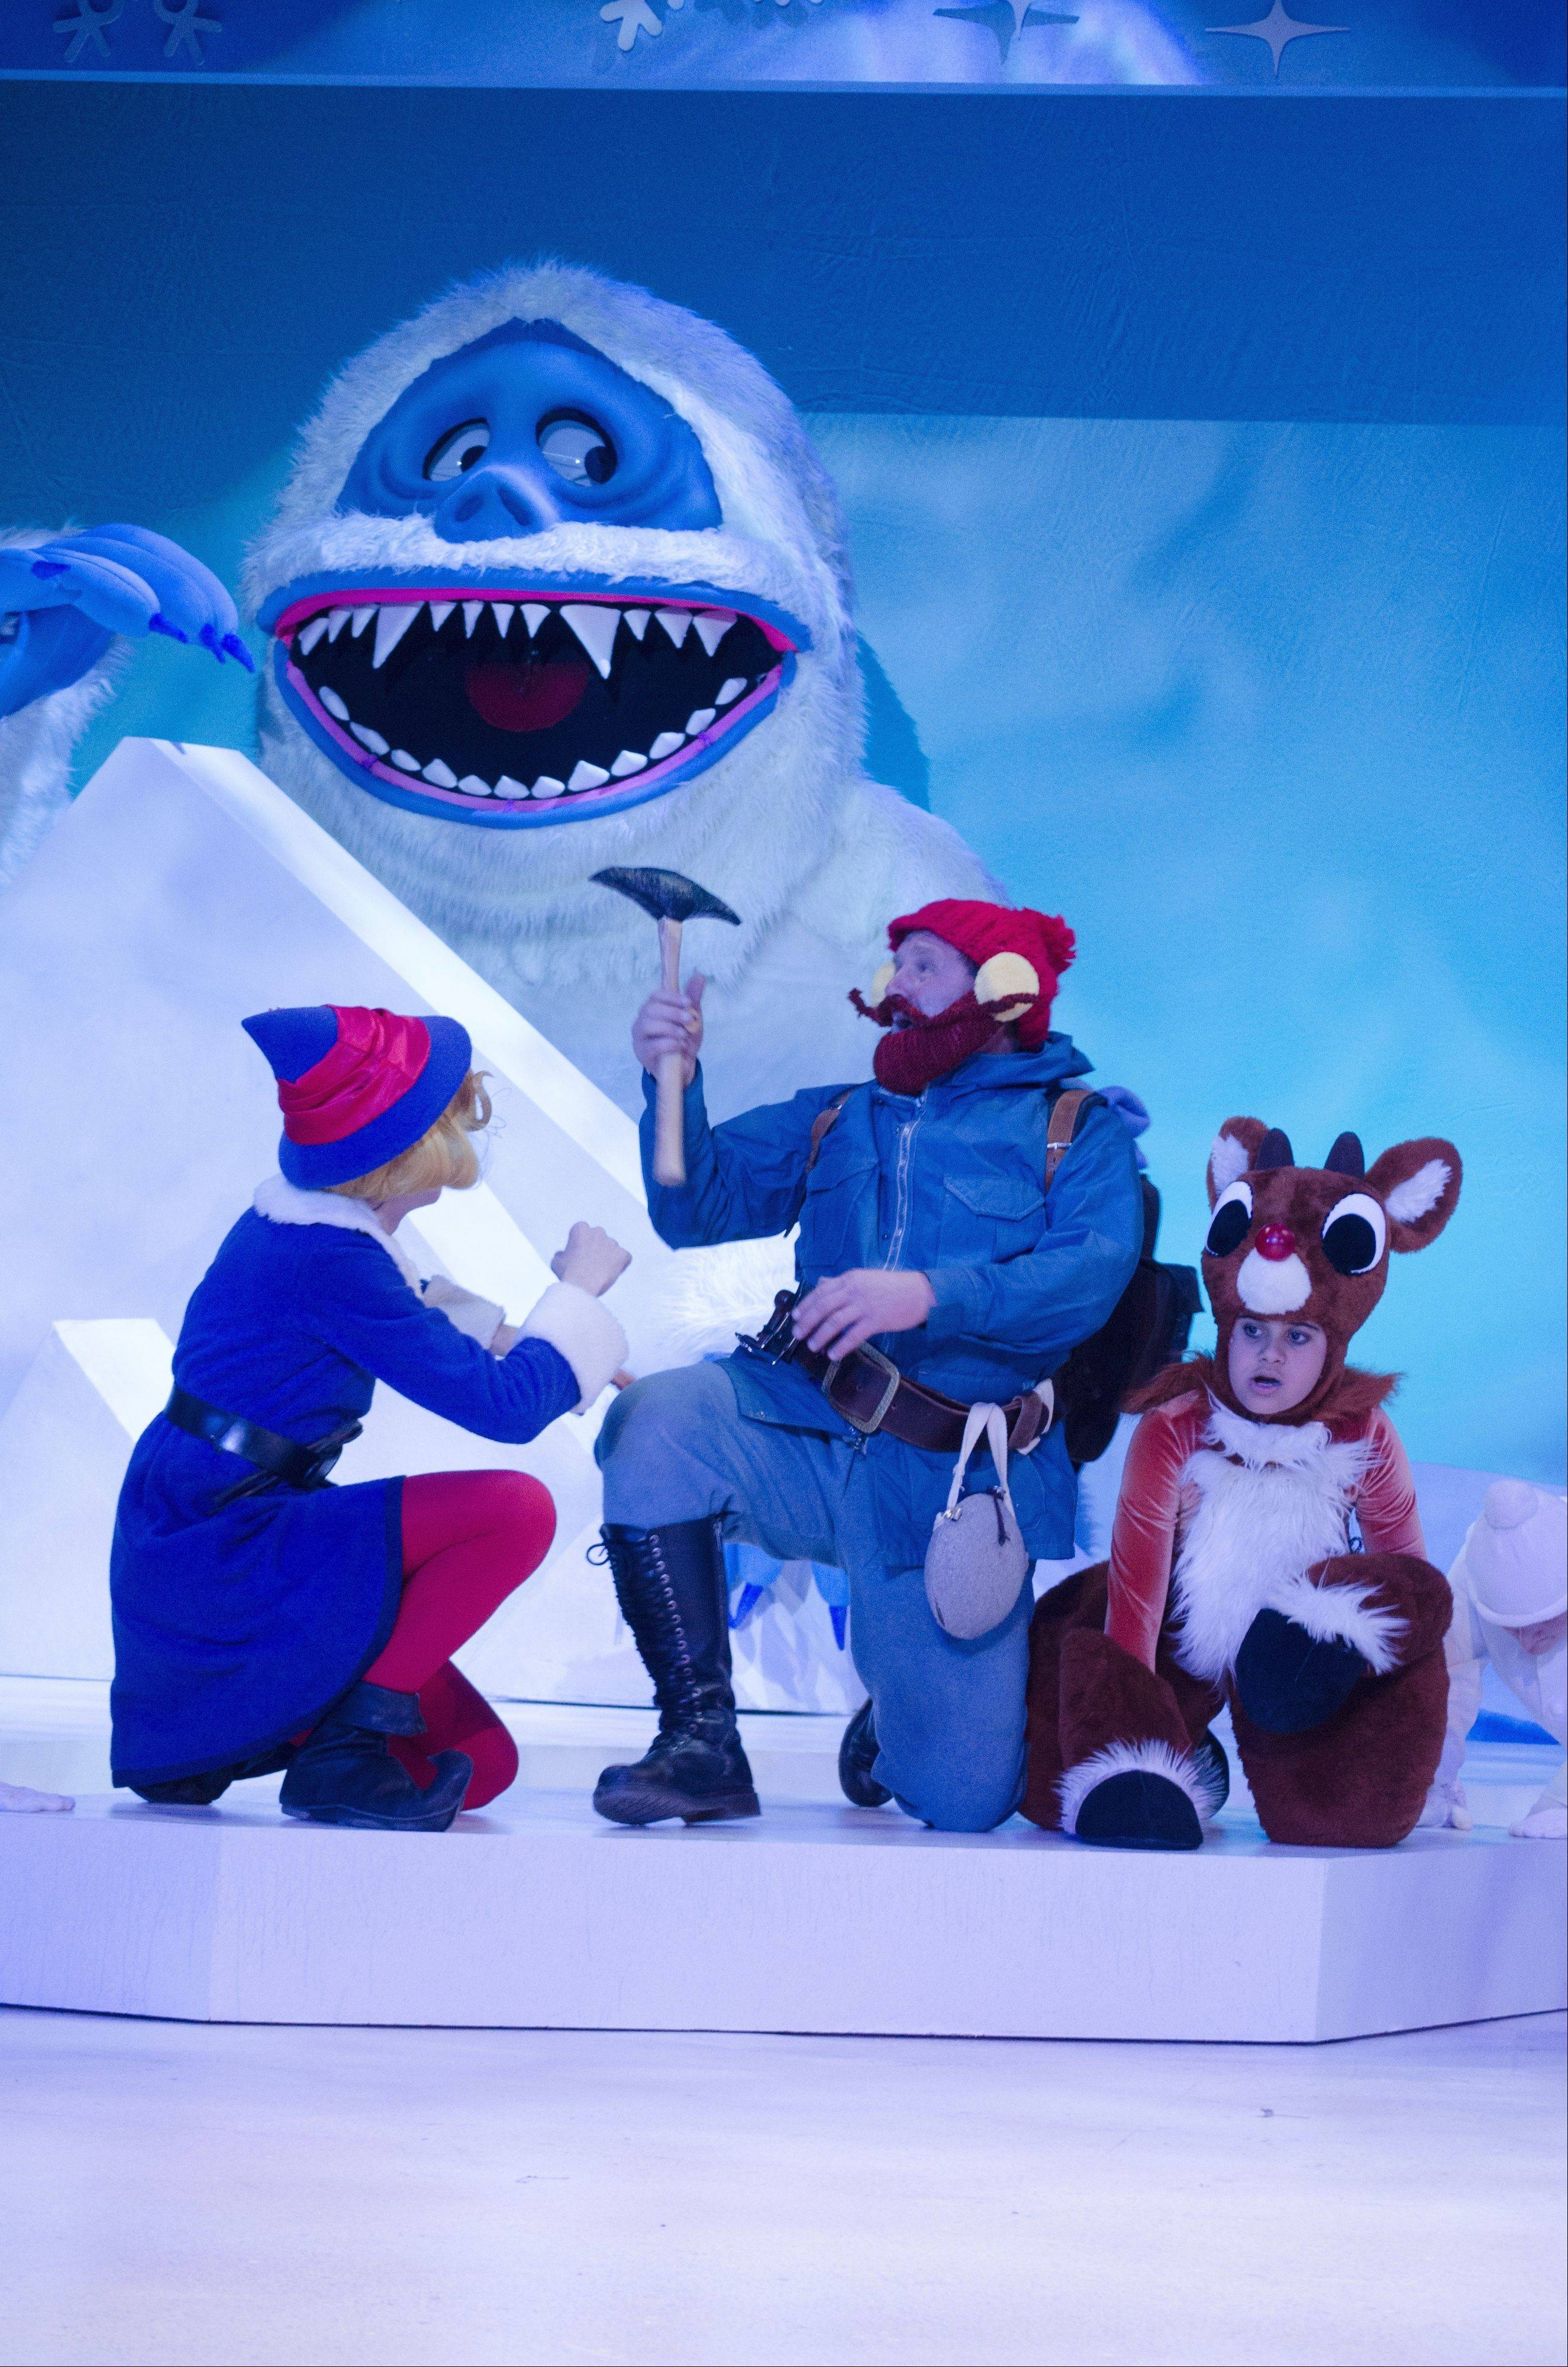 Hermey the Elf (Glenbard West High School sophomore Michael Saguto), Yukon Cornelius (Michael Accardo) and Rudolph (Cody J. Bolithon) try to escape the Abominable Snow Monster.